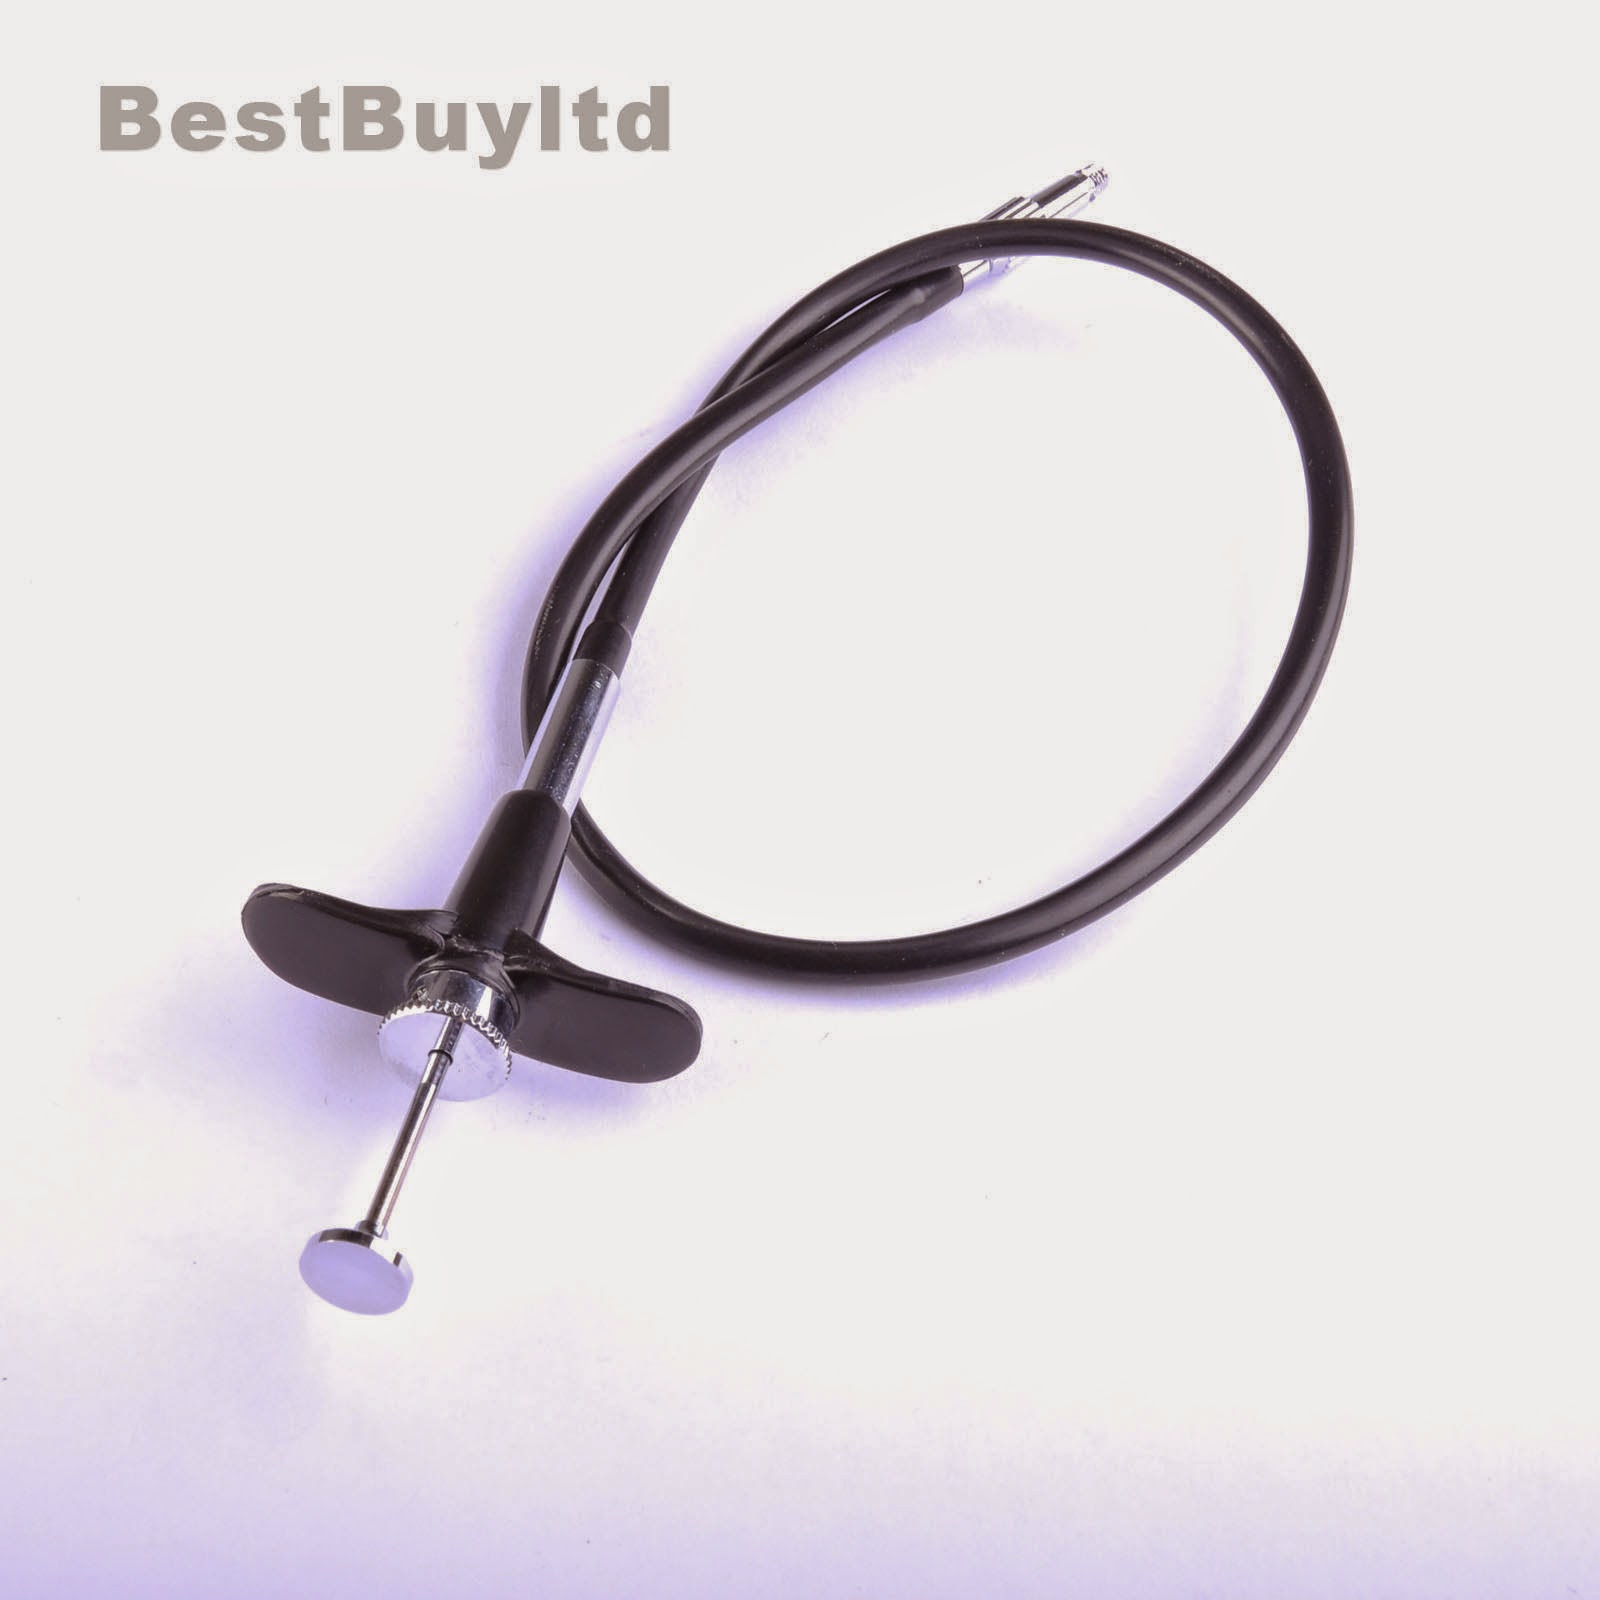 40cm Mechanical Camera Cable Shutter Release Shutter Remote cord for Camera